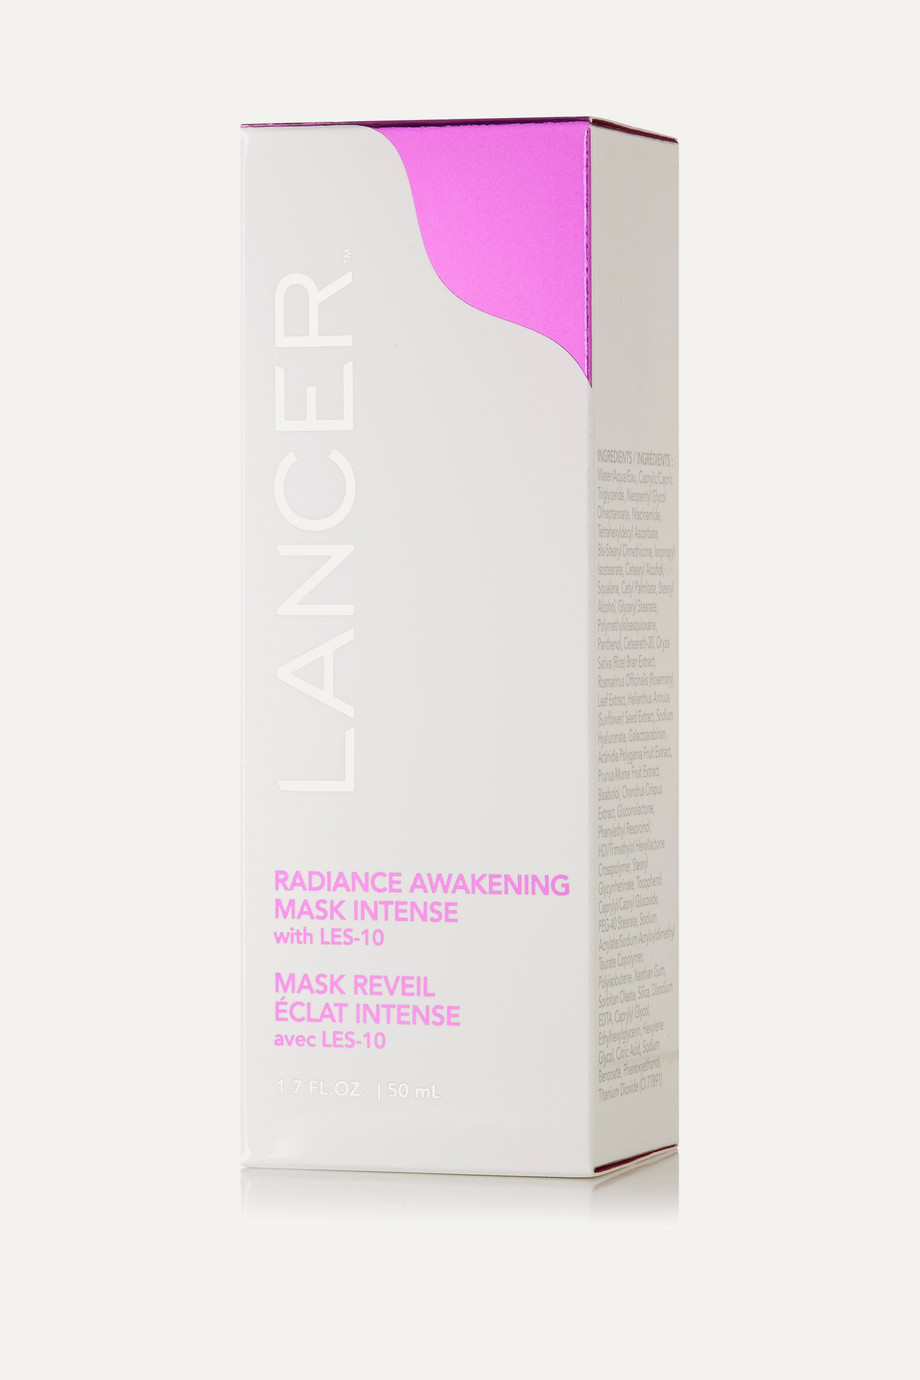 Lancer Radiance Awakening Mask Intense, 50ml